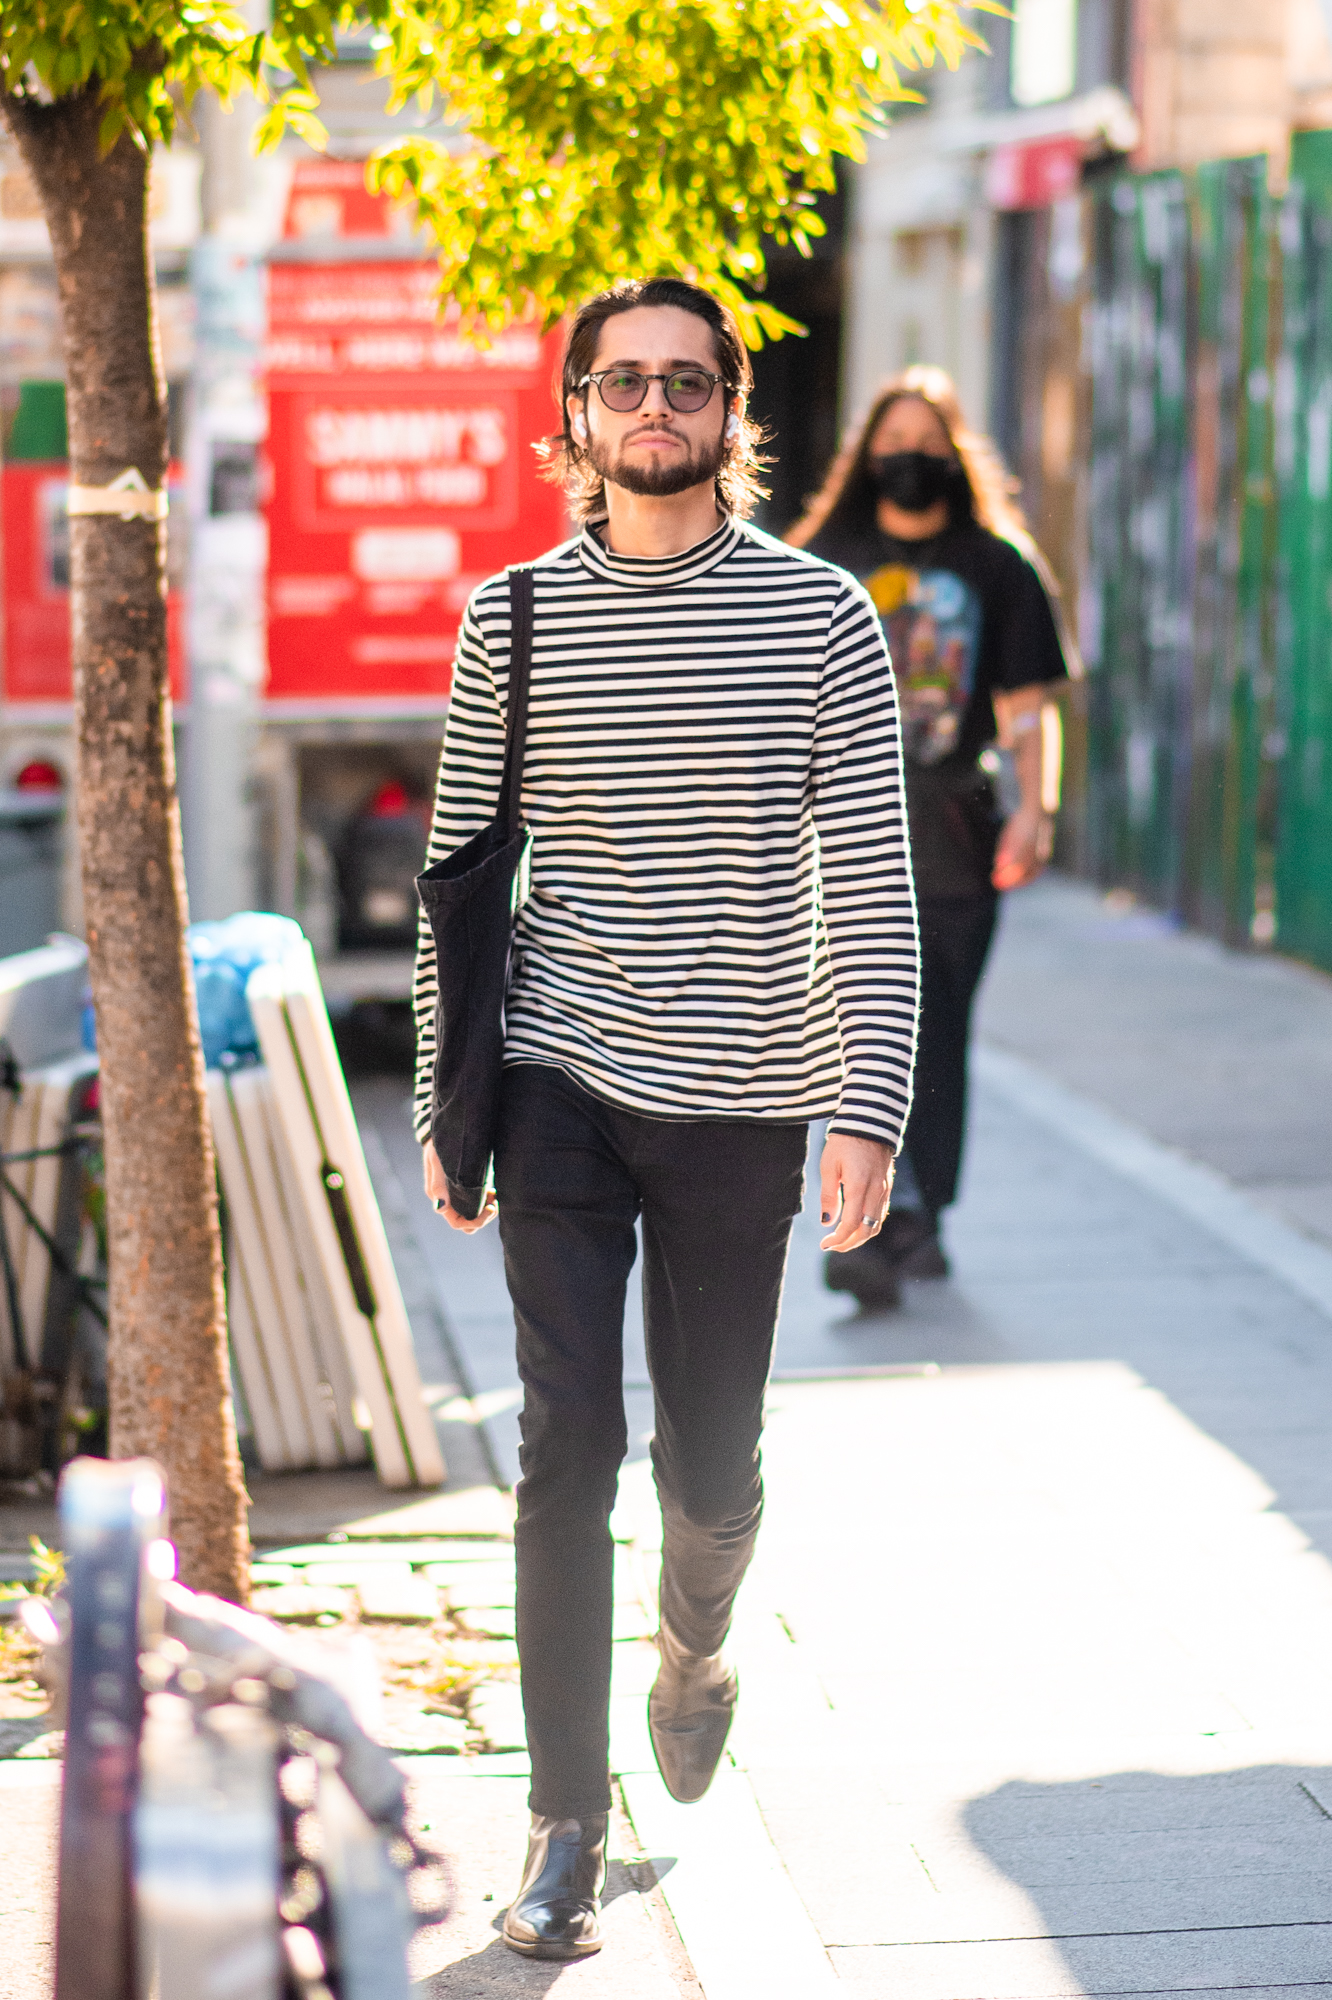 NYC street style fall outfit idea - man wearing striped turtleneck in Parsian style - Karya Schanilec NYC fashion photographer